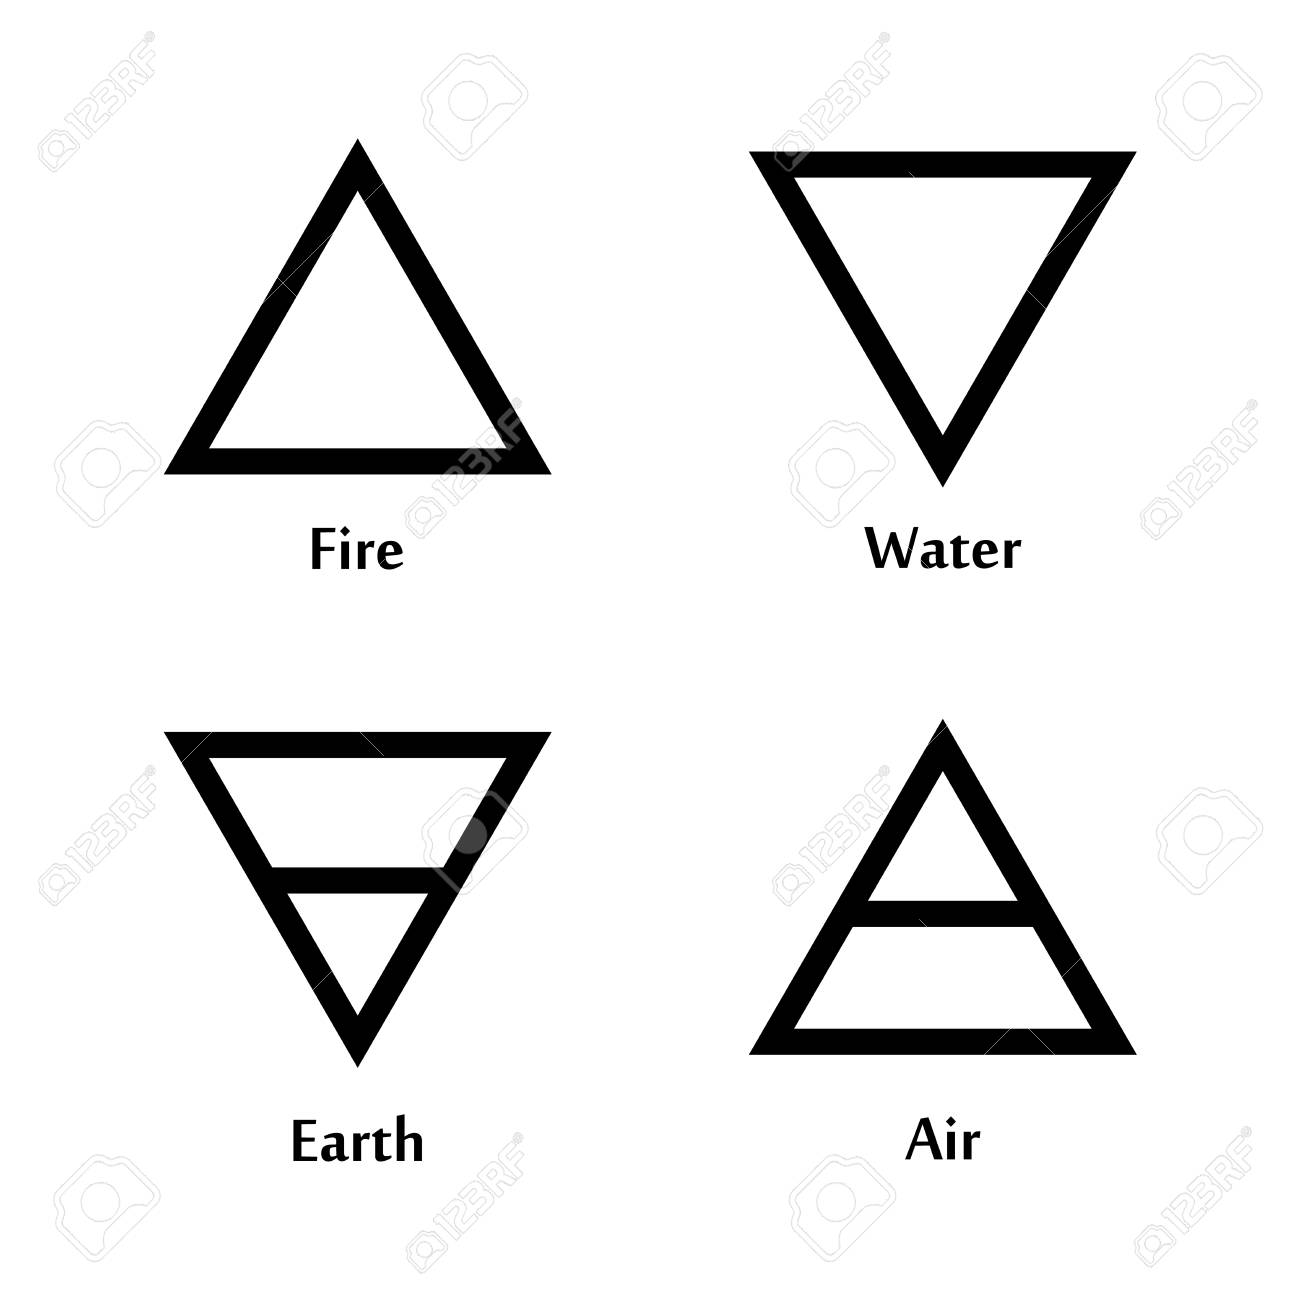 Raster Illustration Of Four Elements Icons Triangle Icons Symbols